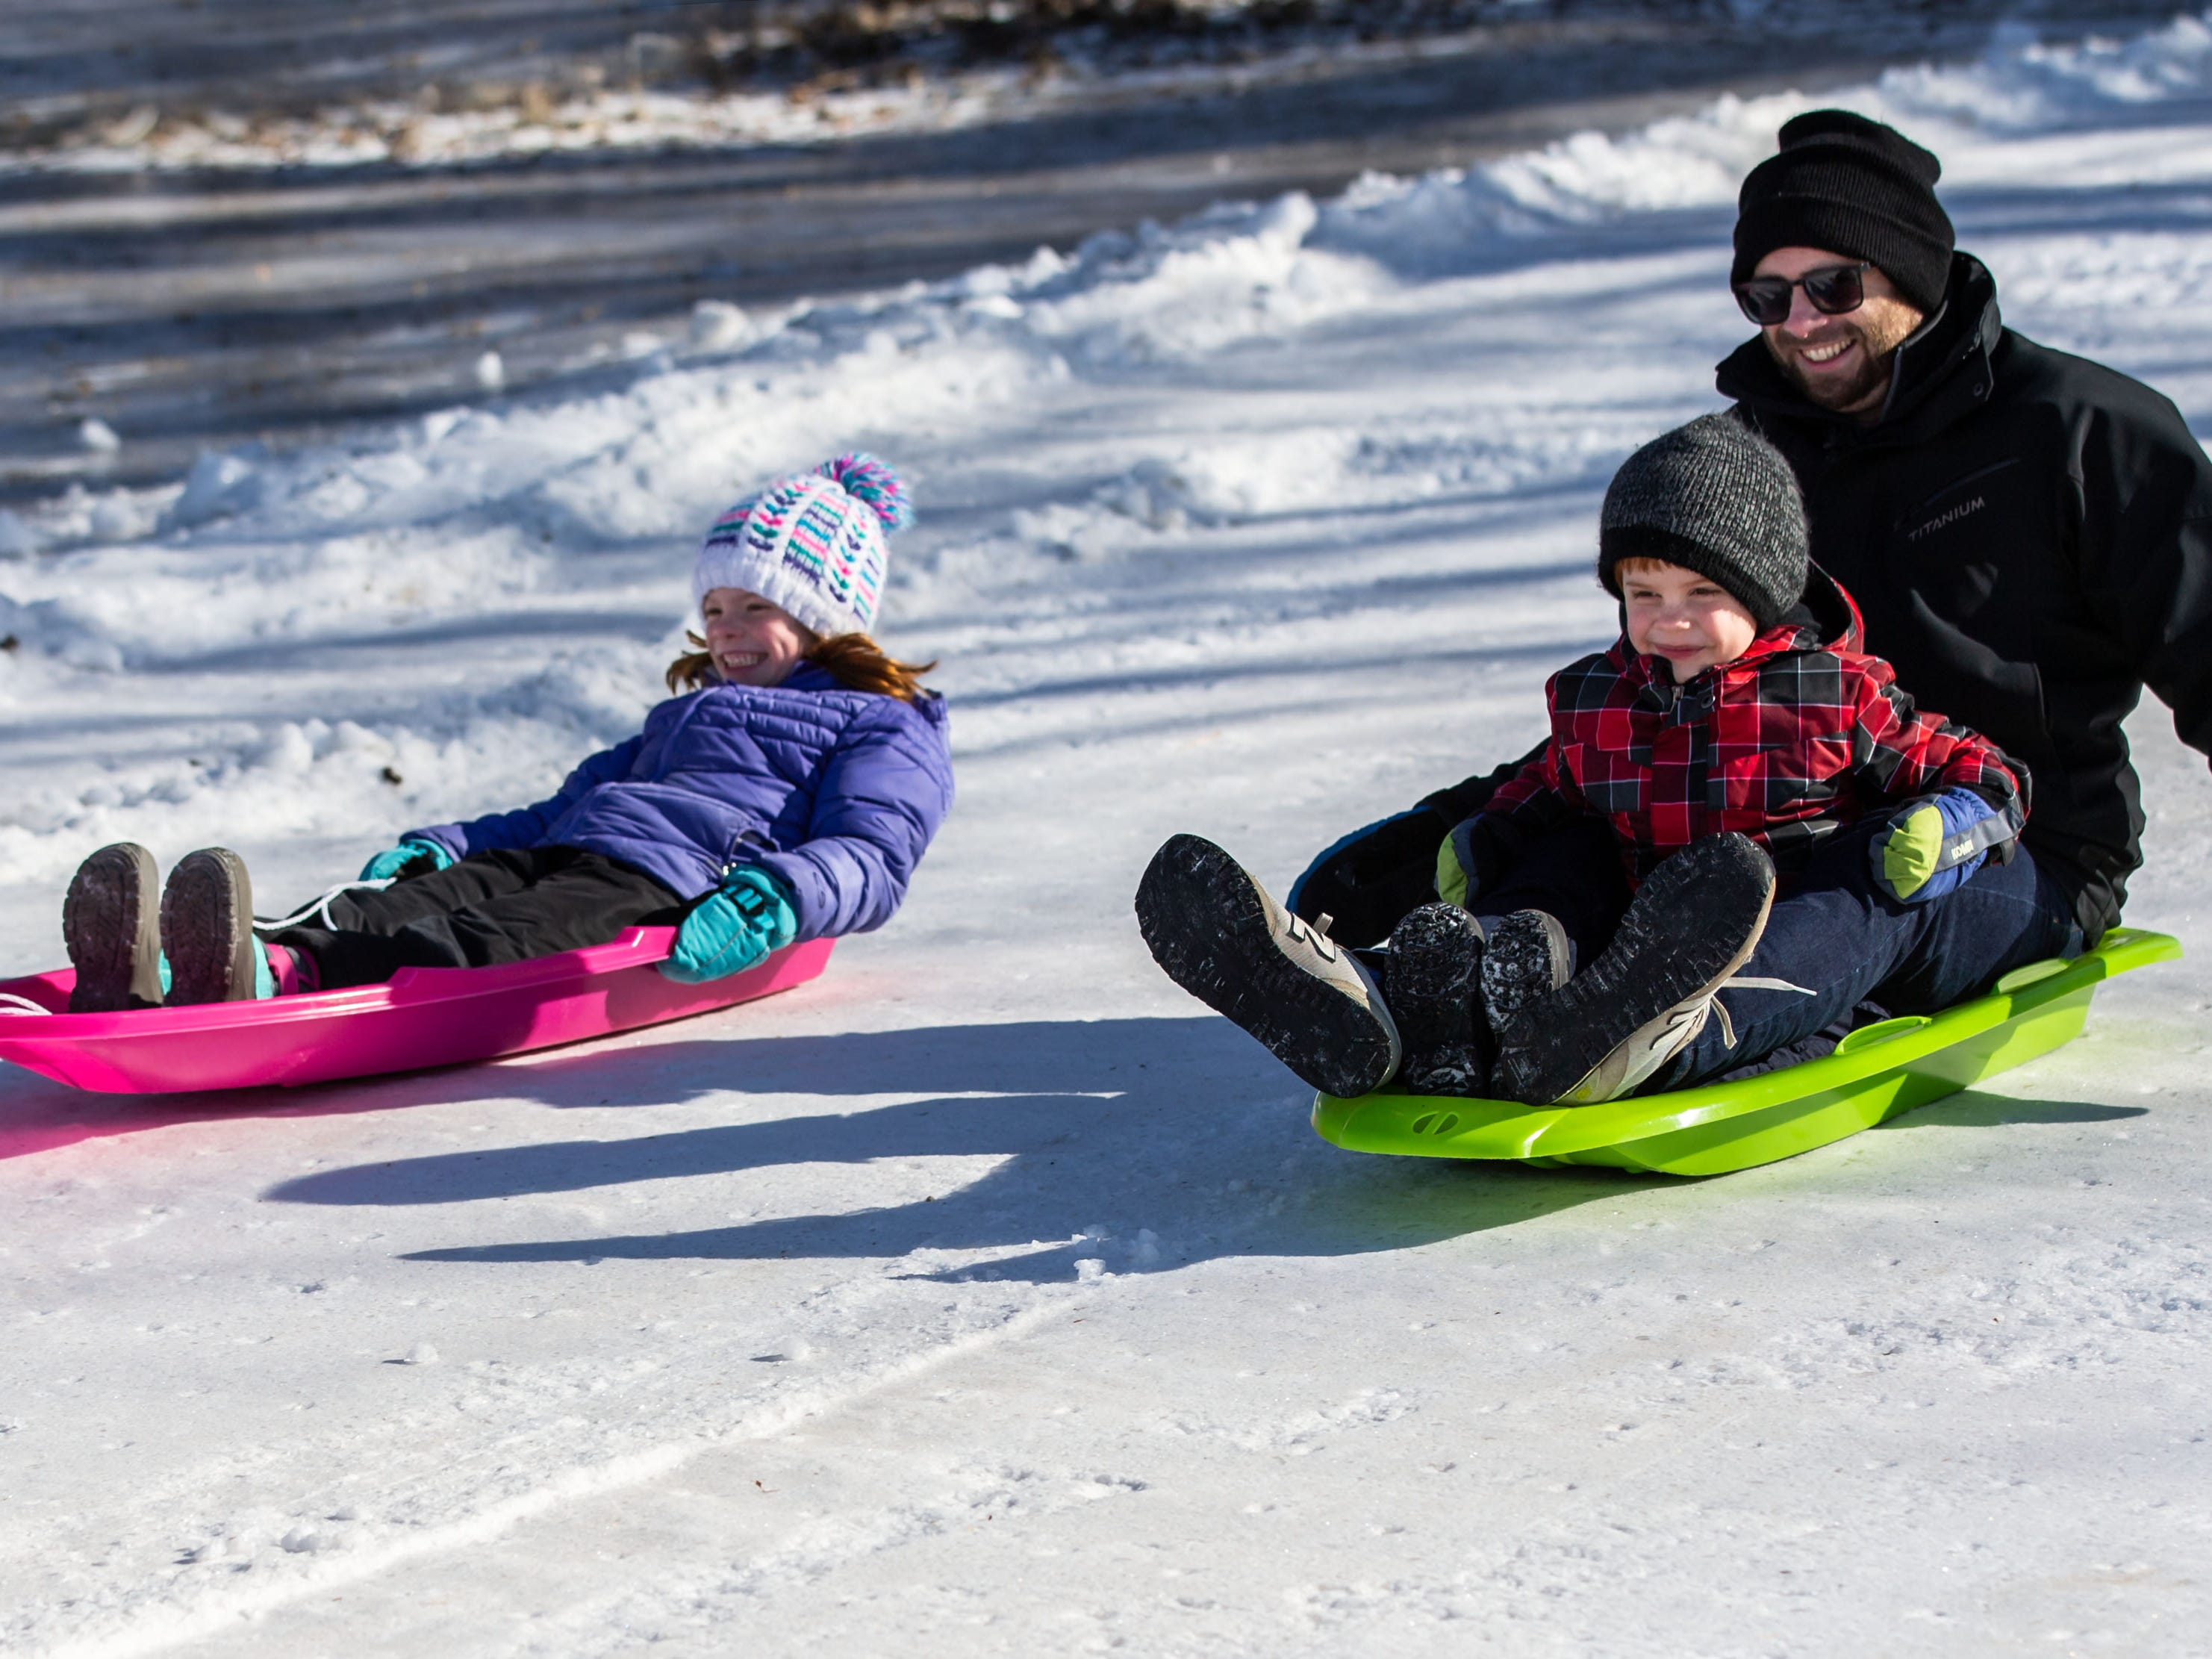 Elsie Ludwig (left), 7, of Oconomowoc races her dad Erik and brother Lucas, 5, down the sledding hill during the annual Winterfest at Lisbon Community Park on Saturday, Feb. 9, 2019. The free event includes ice skating, sledding, skiing, a bonfire, a warming tent with free refreshments, hot dogs and s'mores.